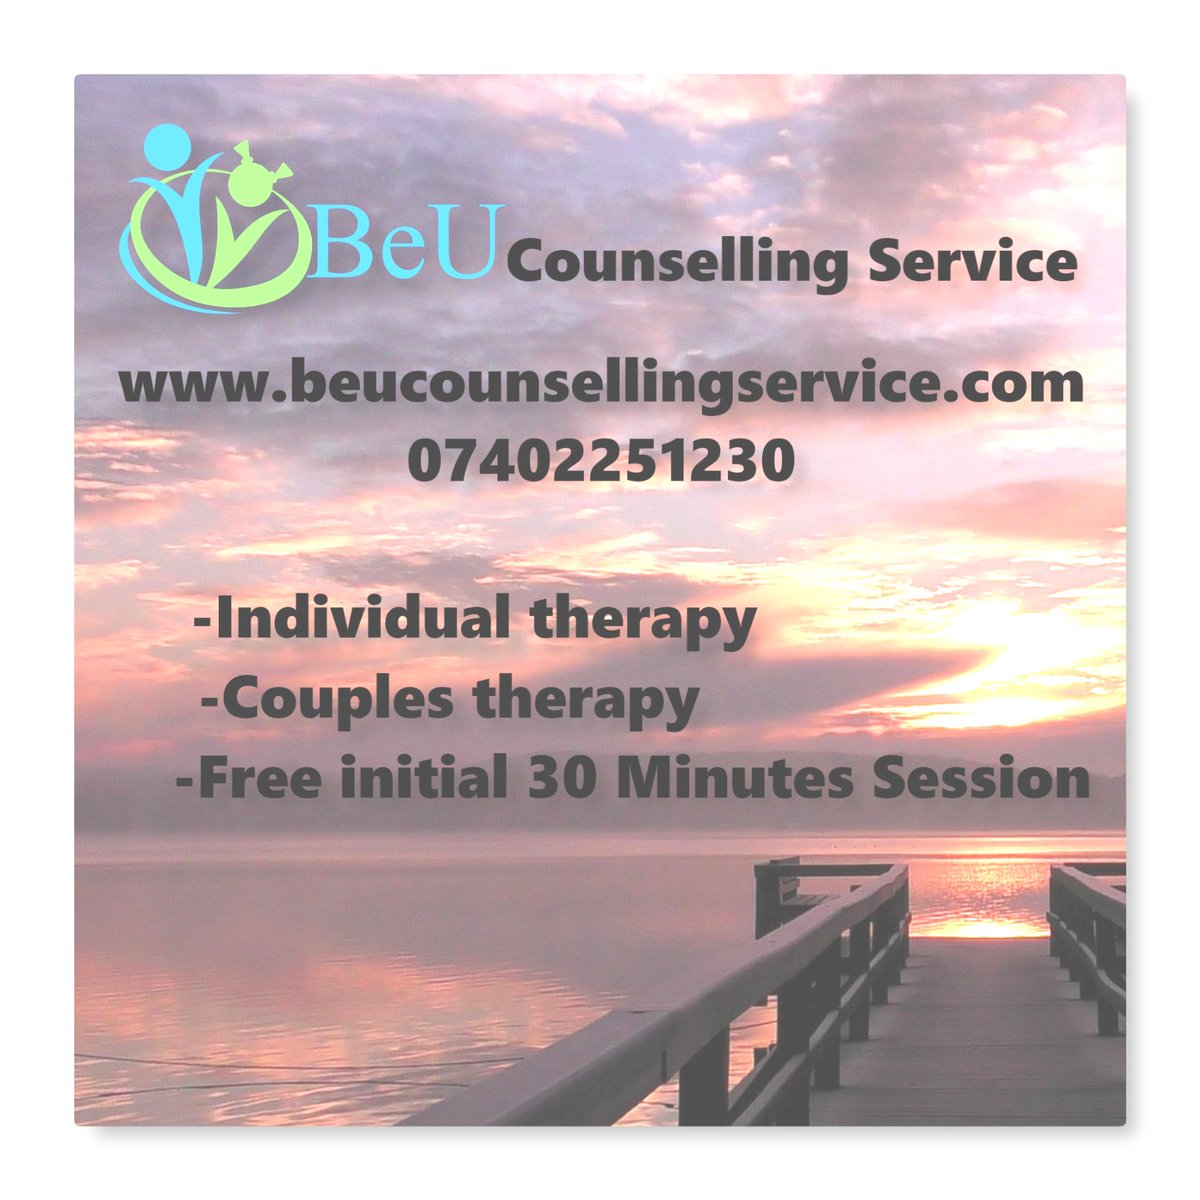 Do you want to talk to somebody? Phone me to book your no obligation 30 minute session #depression #anxiety #relationships #sadness #grief #bereavement #confidence #selfesteem #selfimage #identity #illnesses #life #parenting #marriages #mentalhealth #selfcare #selflove